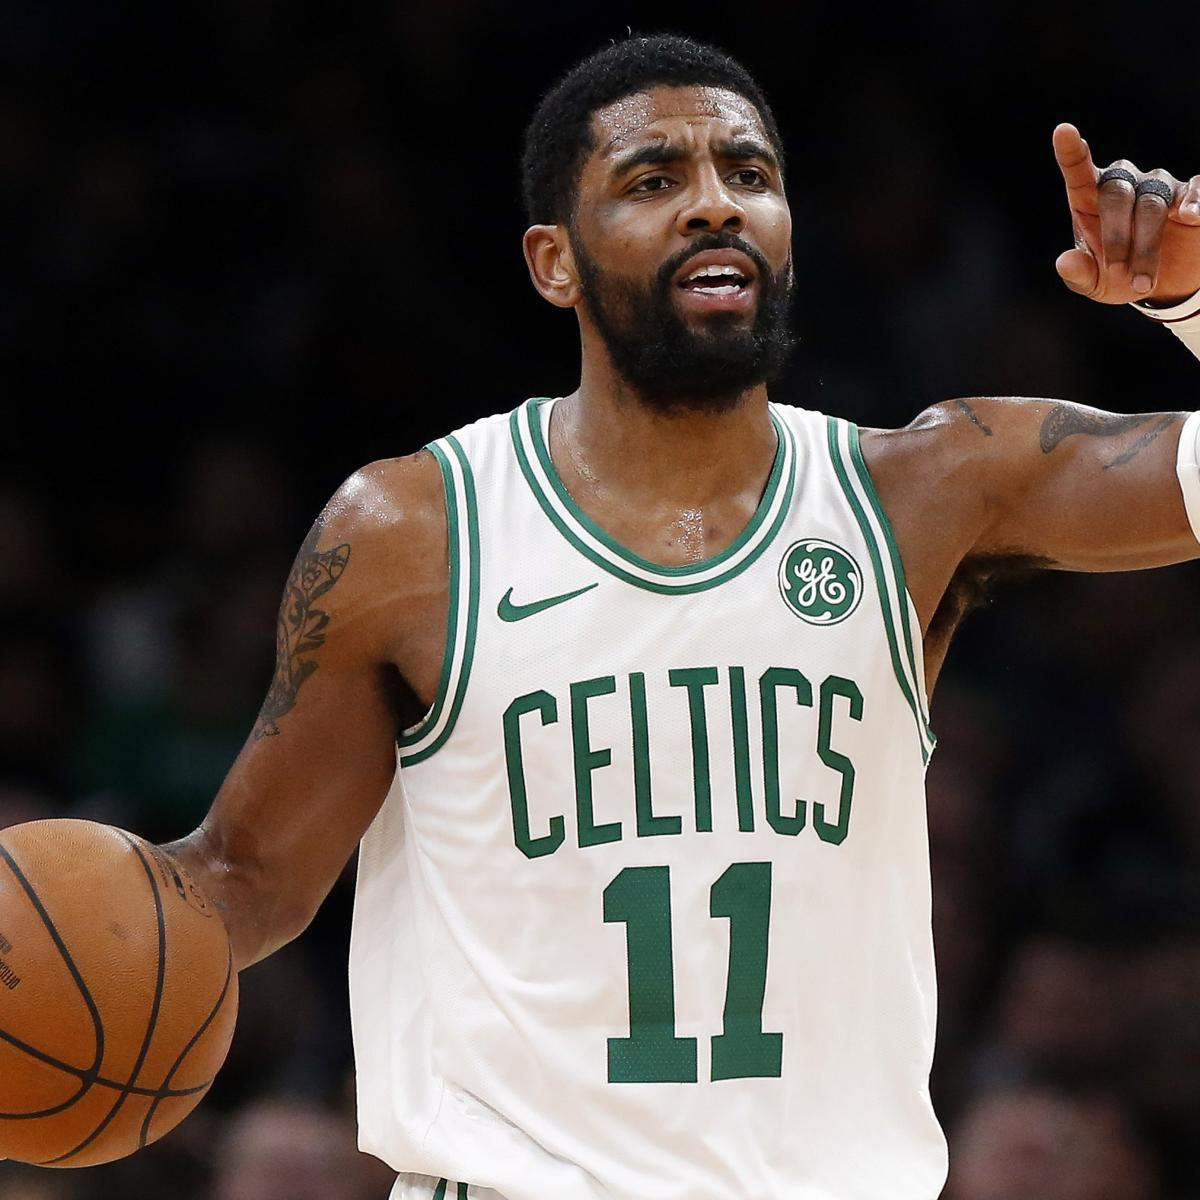 Kyrie Irving Rumors: Star Has 'Essentially Ghosted' Celtics Ahead of Free Agency